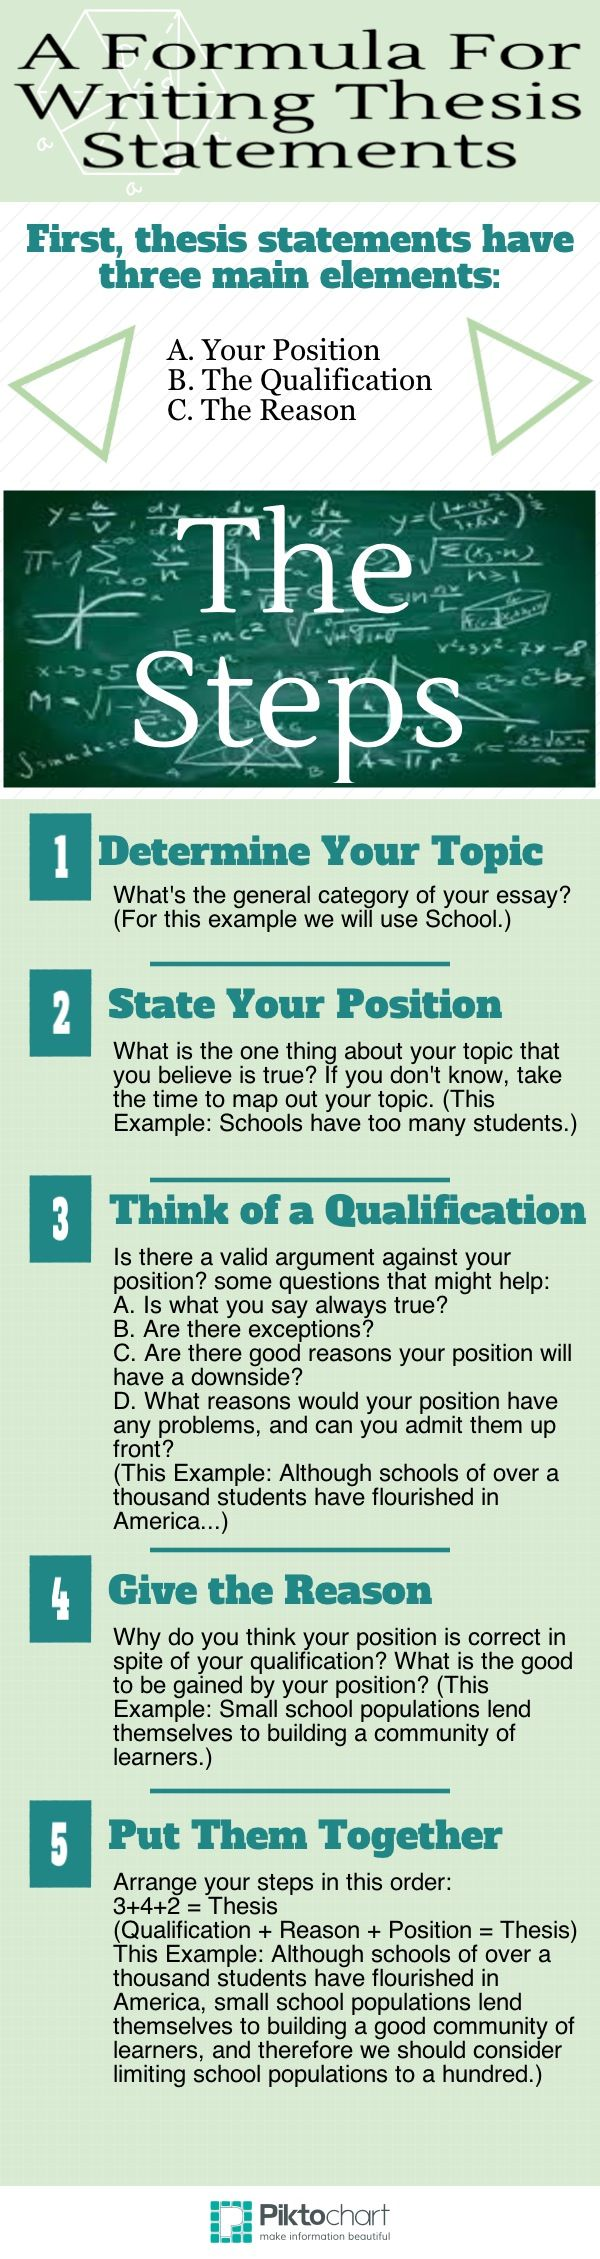 Cultural Awareness Essay  Best Ideas About Thesis Statement Argumentative Thesis Statements  Piktochart Infographic Write An Essay Online also Essay On Food Security Thesis Statement For An Argumentative Essay  Best Ideas About  Good Topics To Do A Persuasive Essay On